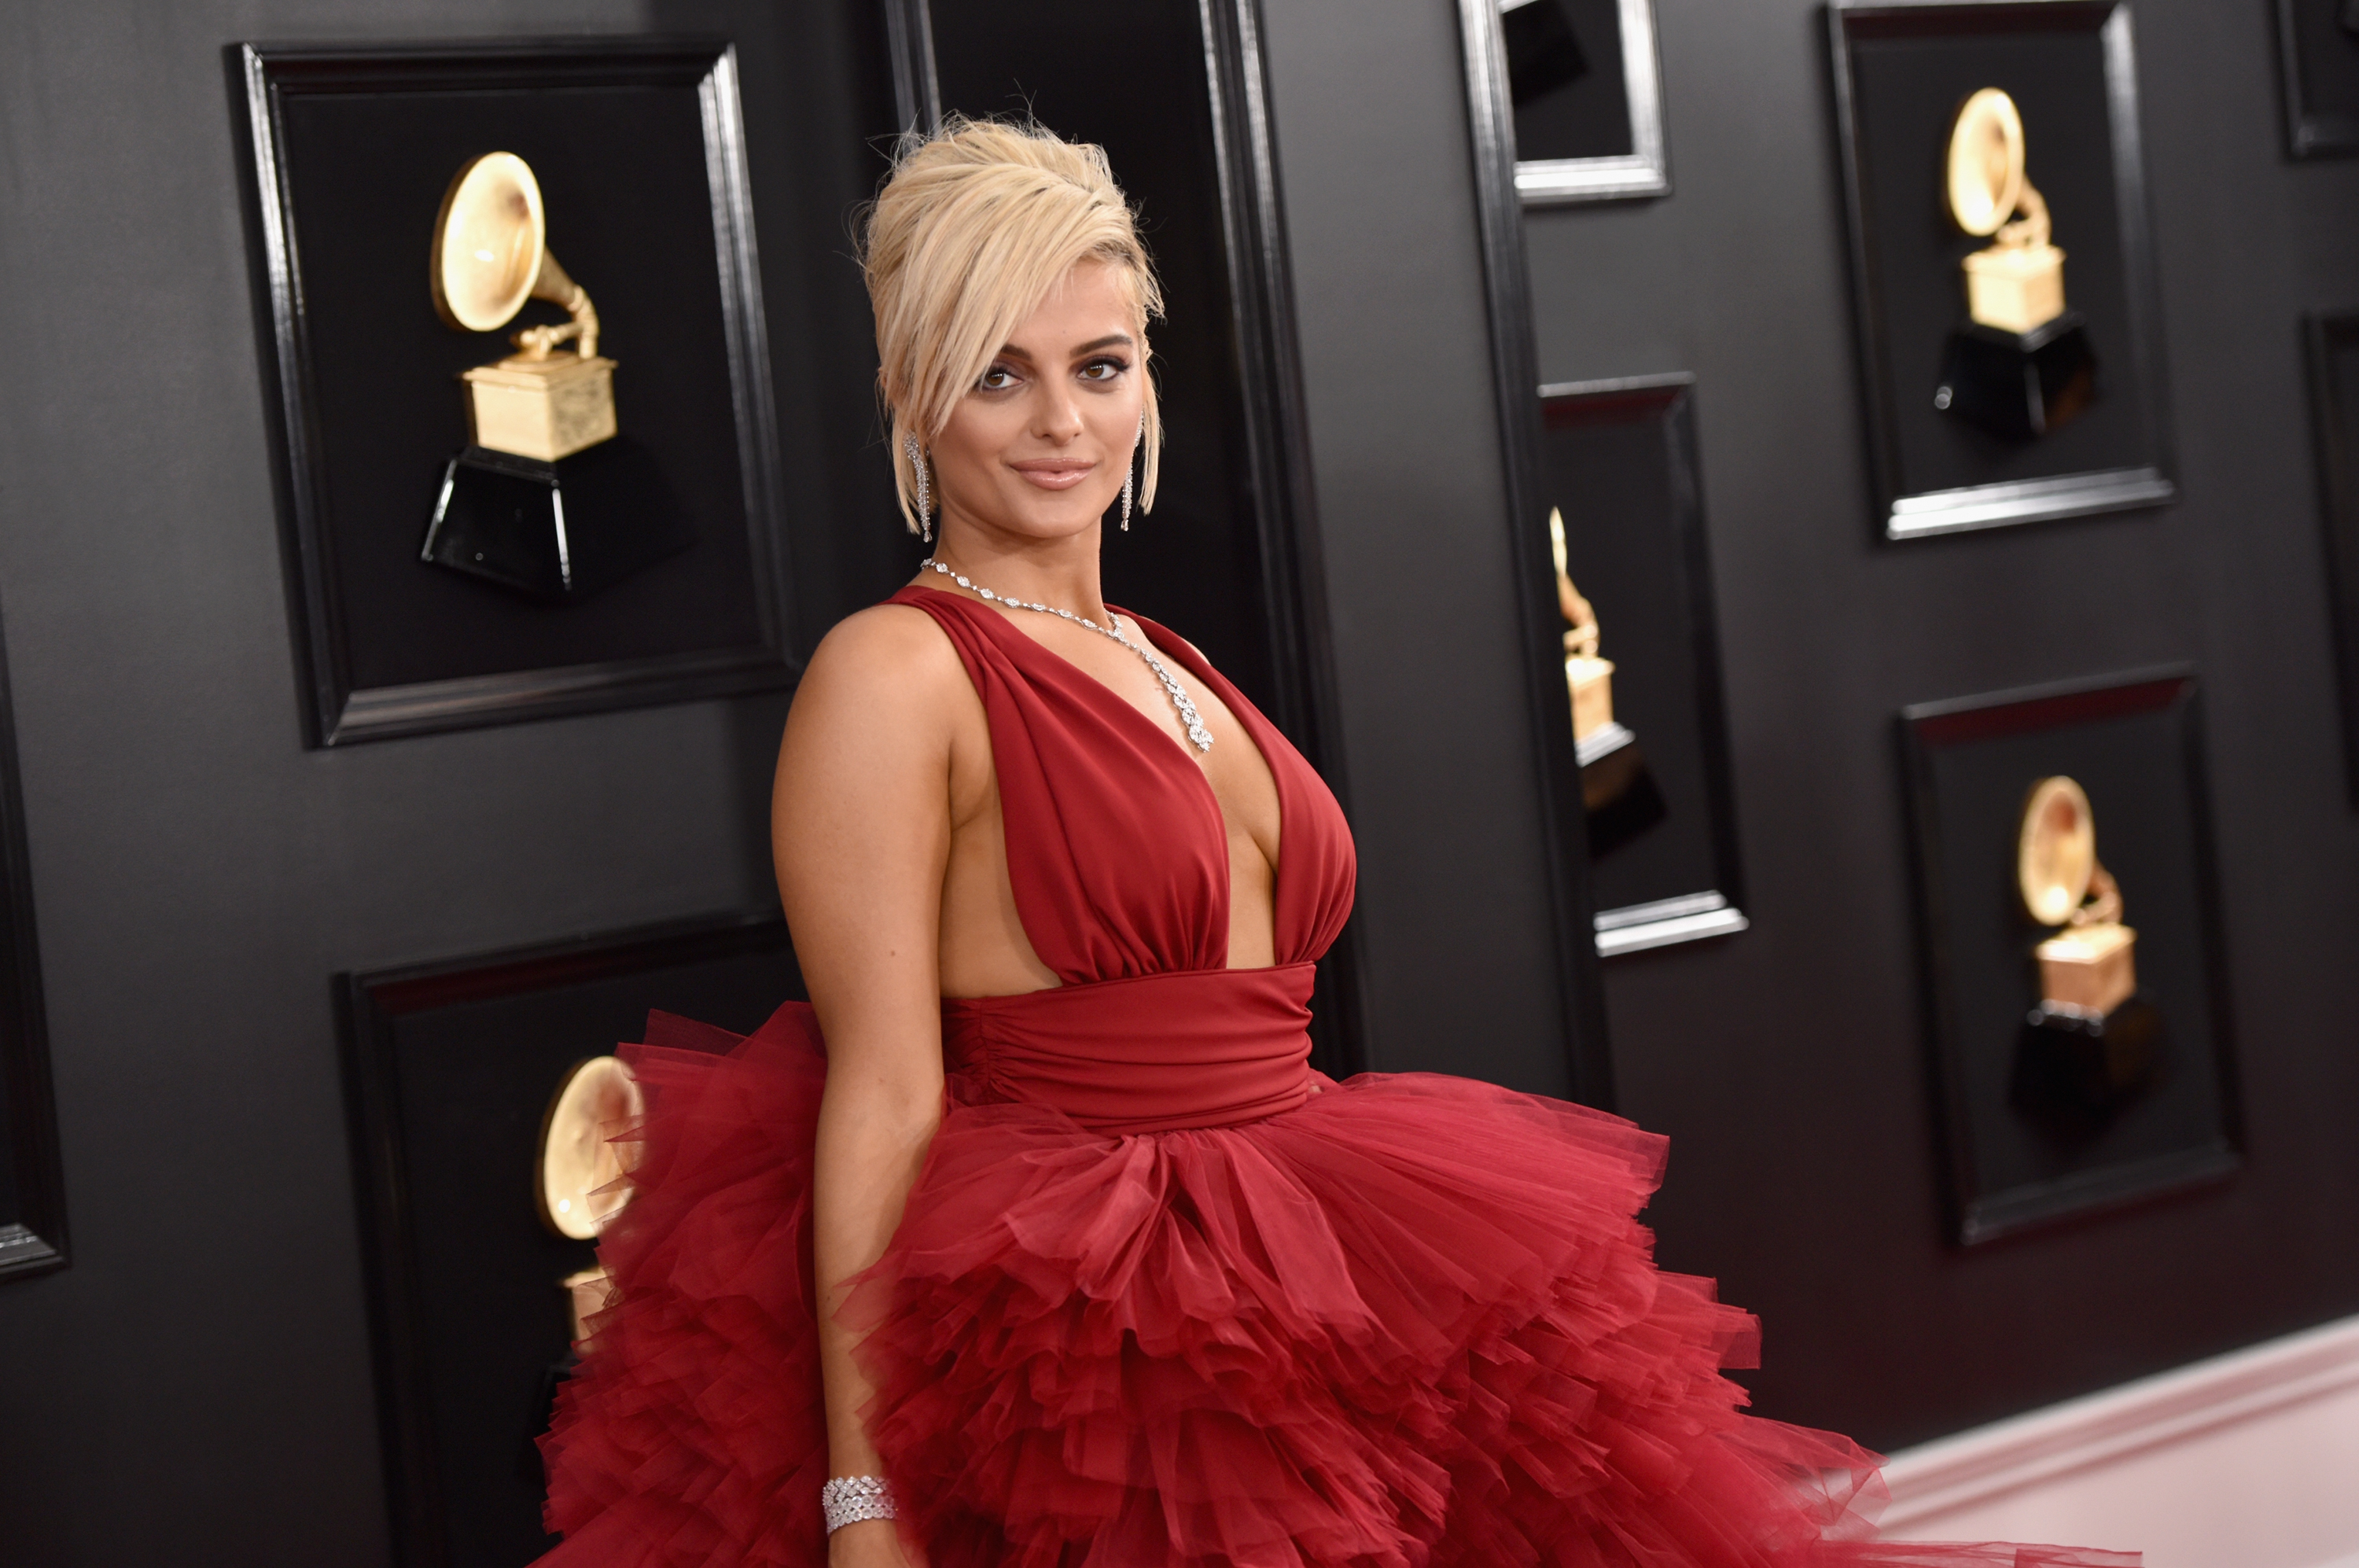 Bebe Rexha defends dad's pleas asking her to 'stop posting stupid pornography' thumbnail